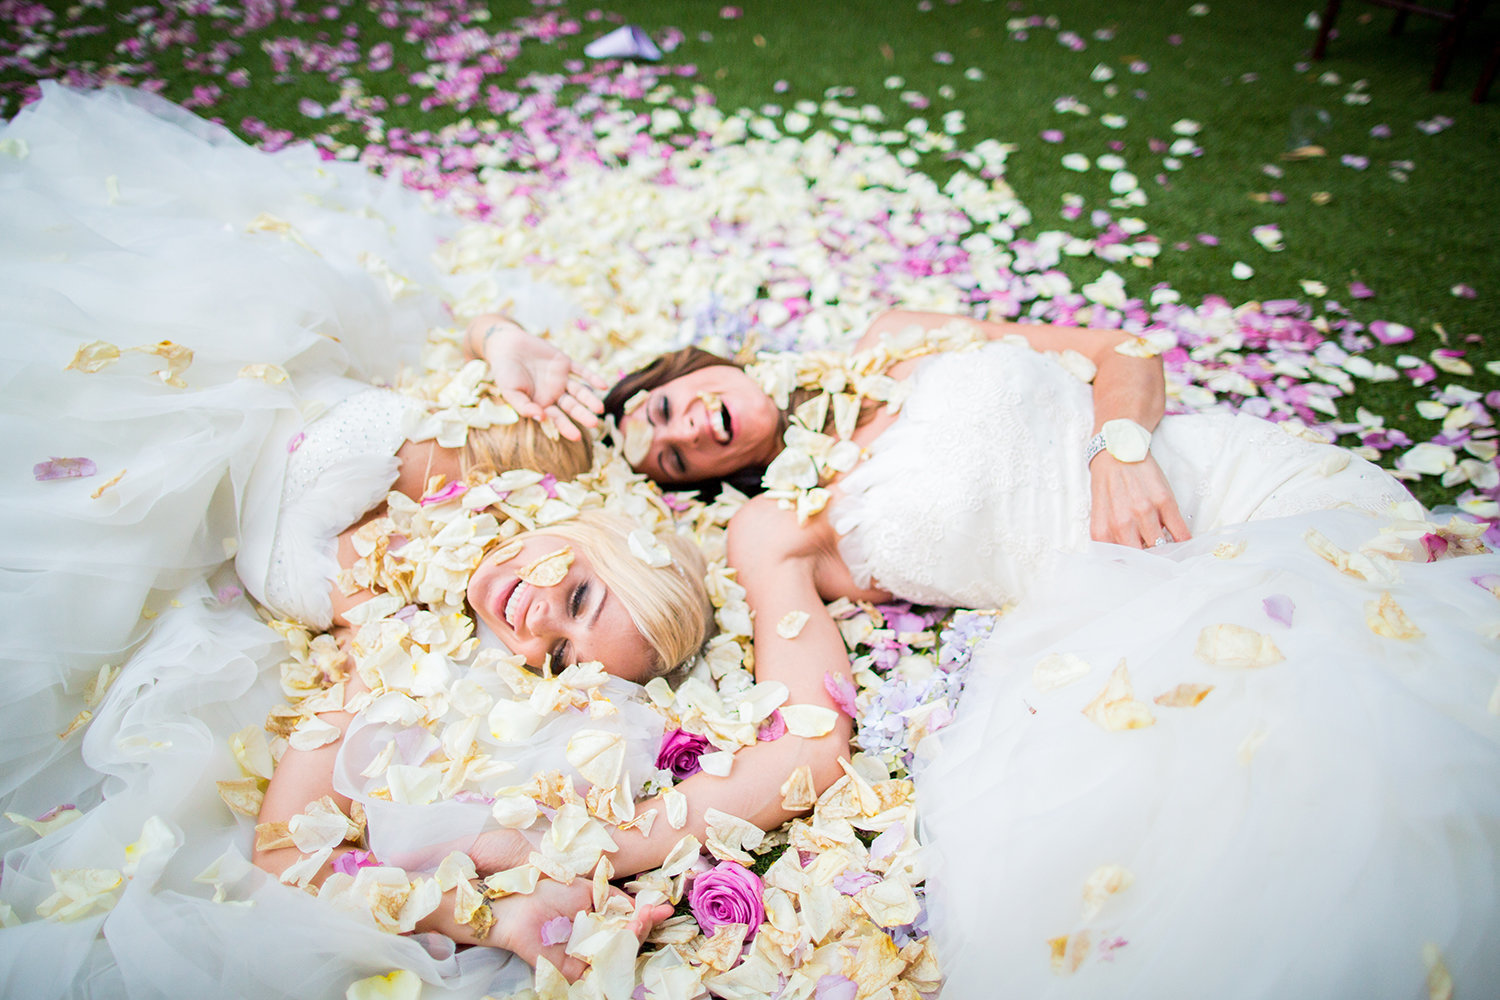 Lesbian brides laying on a bed of flower petals at their wedding